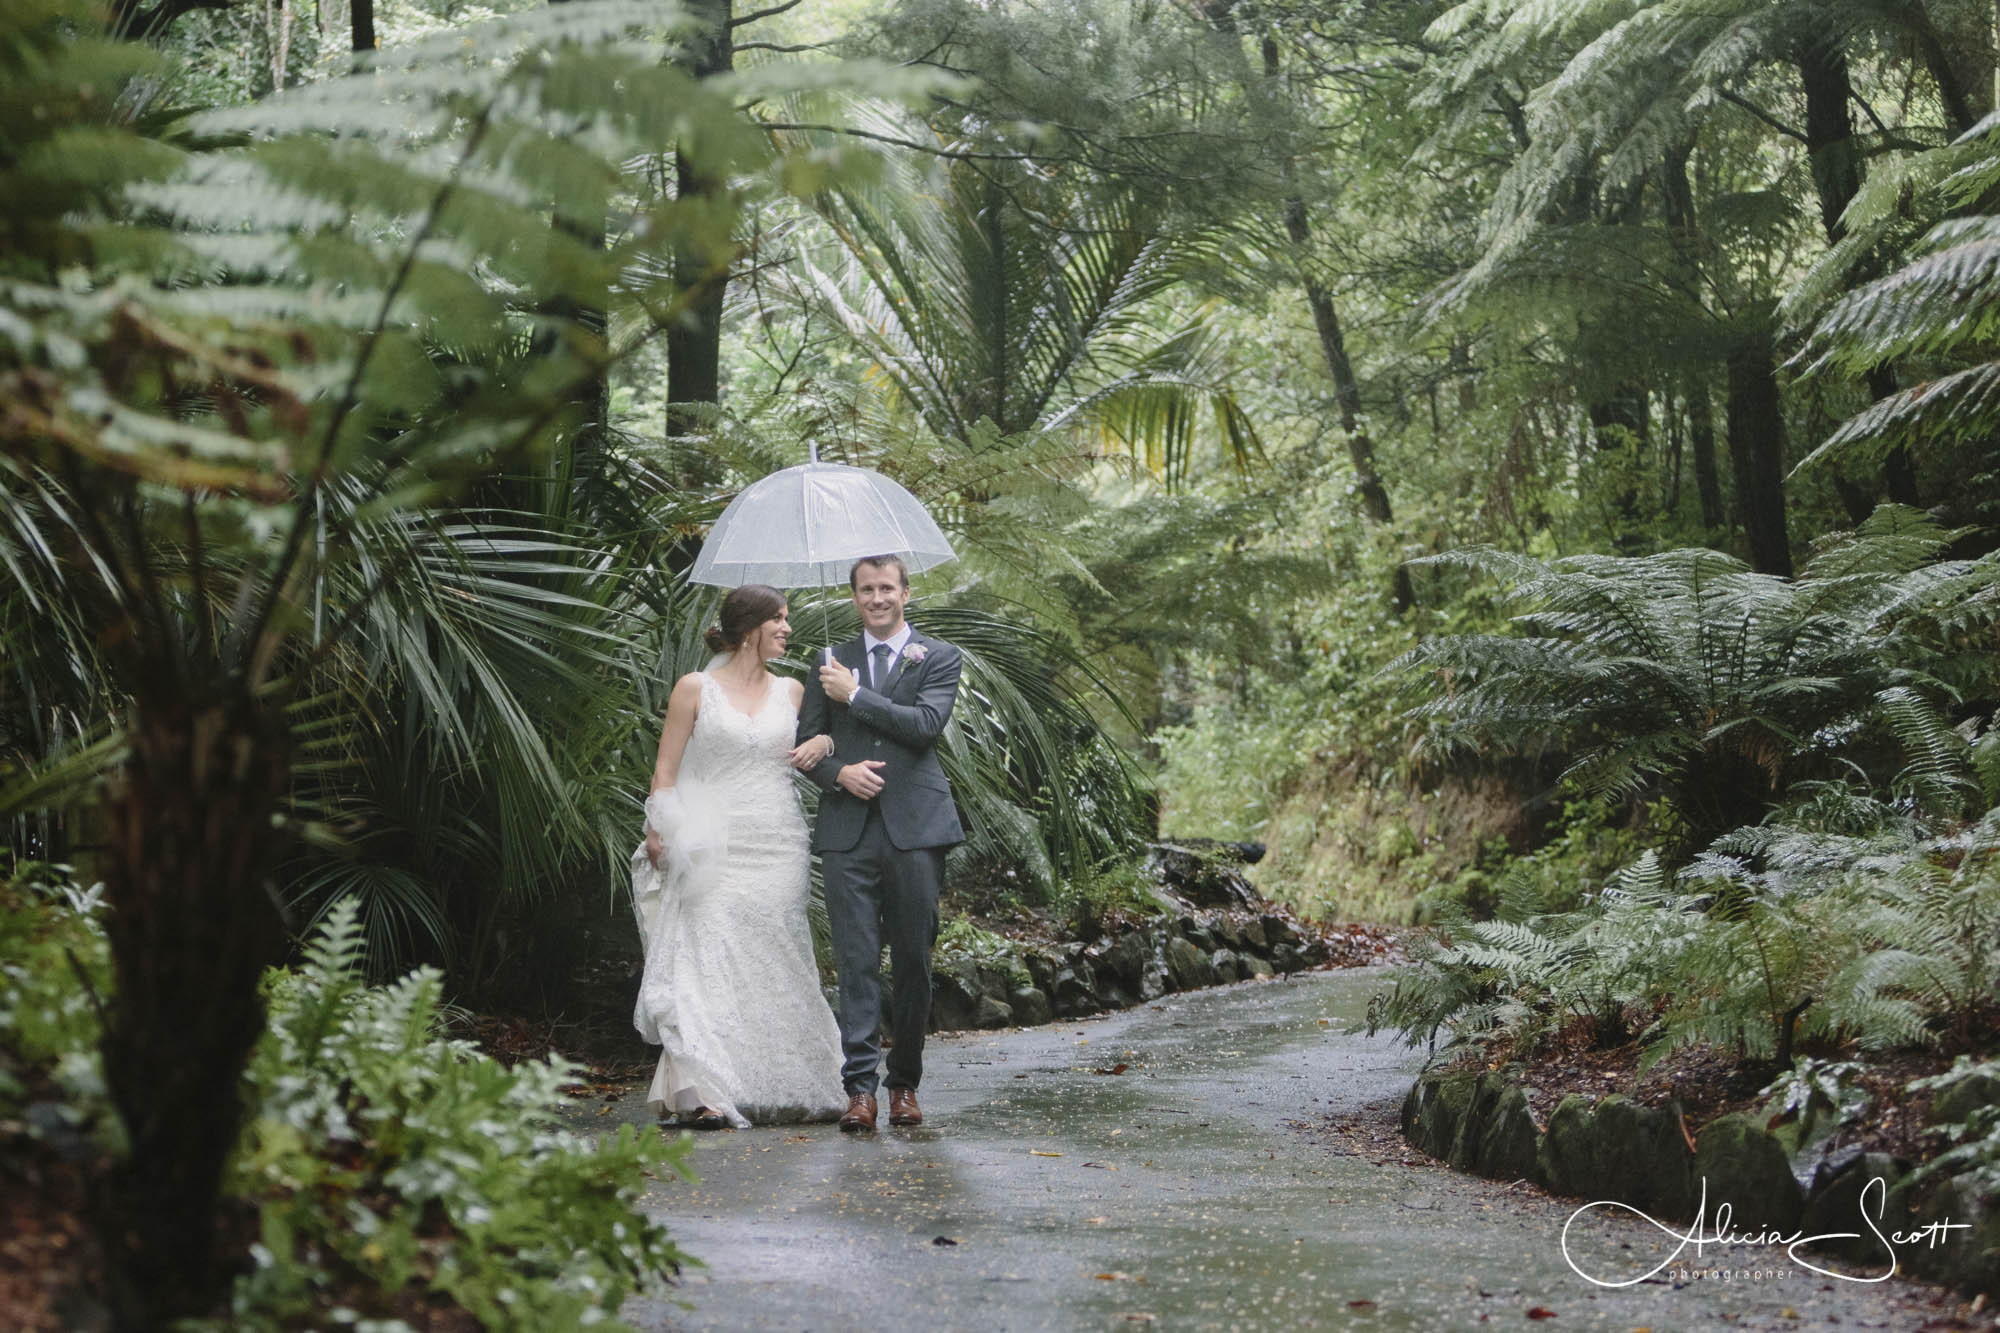 Images from a Foxglove wedding taken by Alicia Scott Wellington wedding photographer